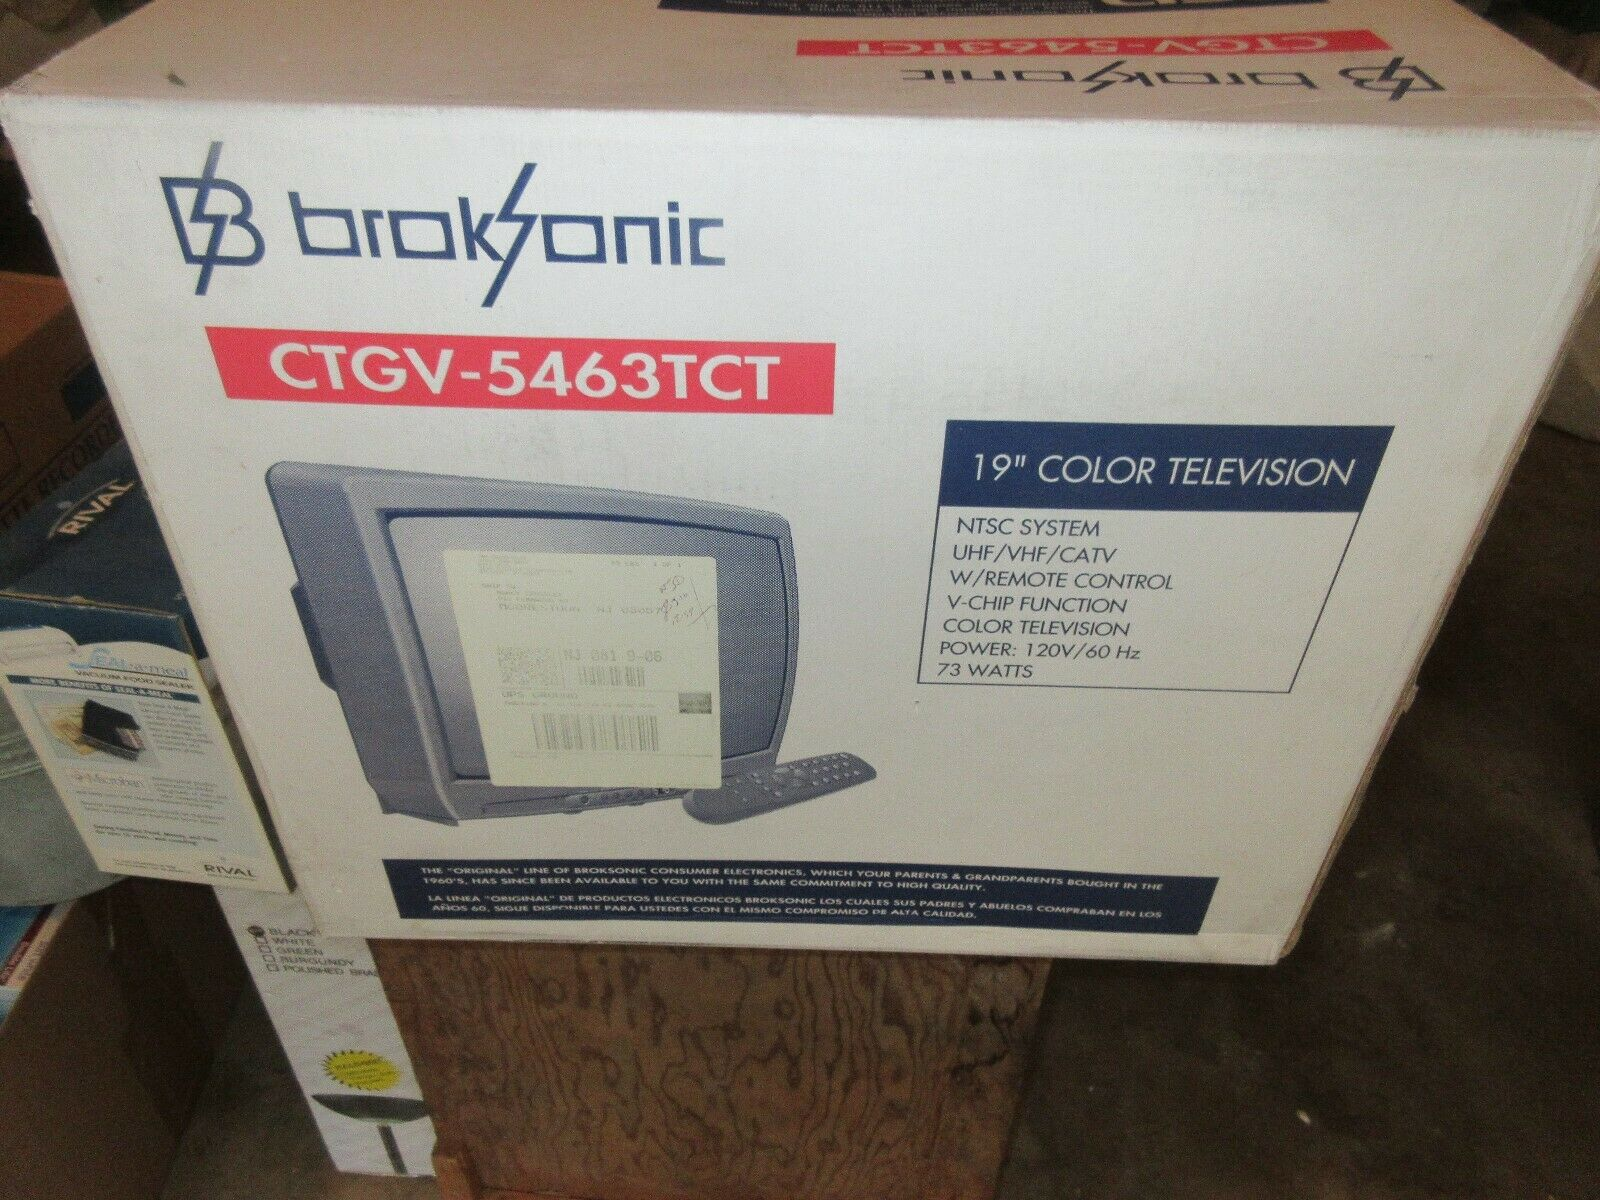 "Broksonic , 19"" Color TV , CTGV-5463TCT , Vintage , NIB"